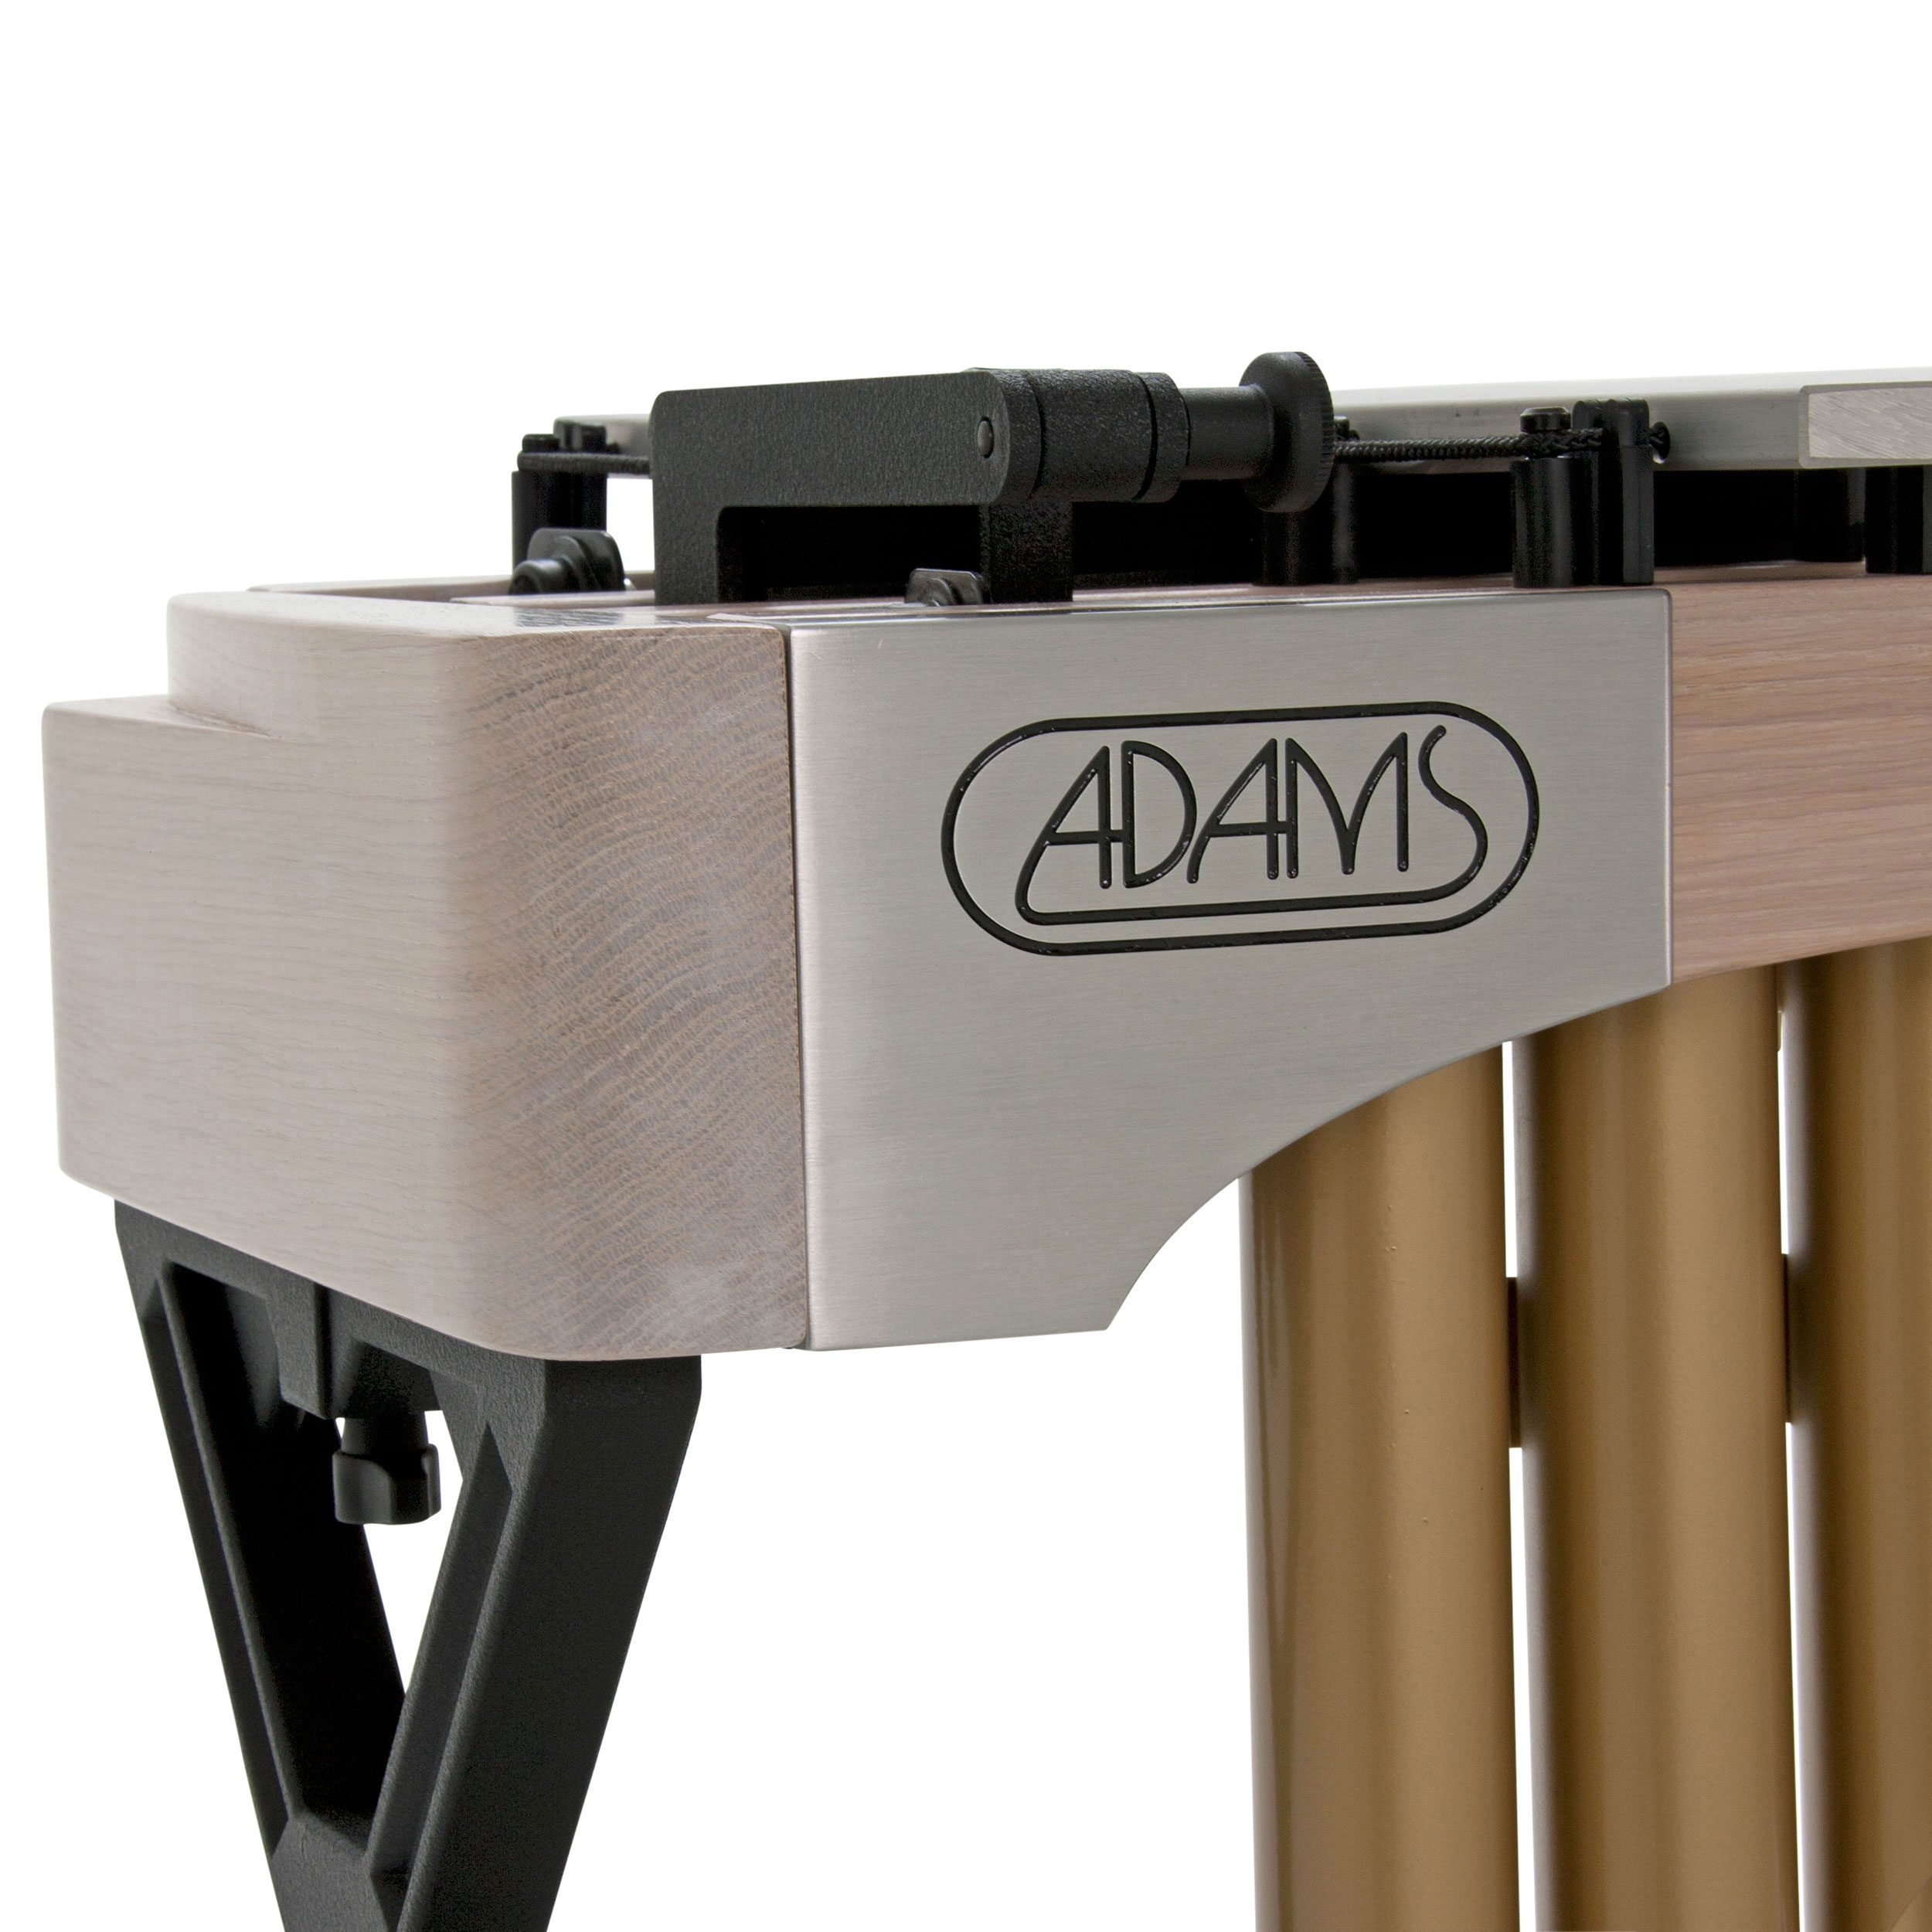 Adams 3.5 Octave Alpha Series Vibraphone with Silver Bars, Traveler Frame, and Motor